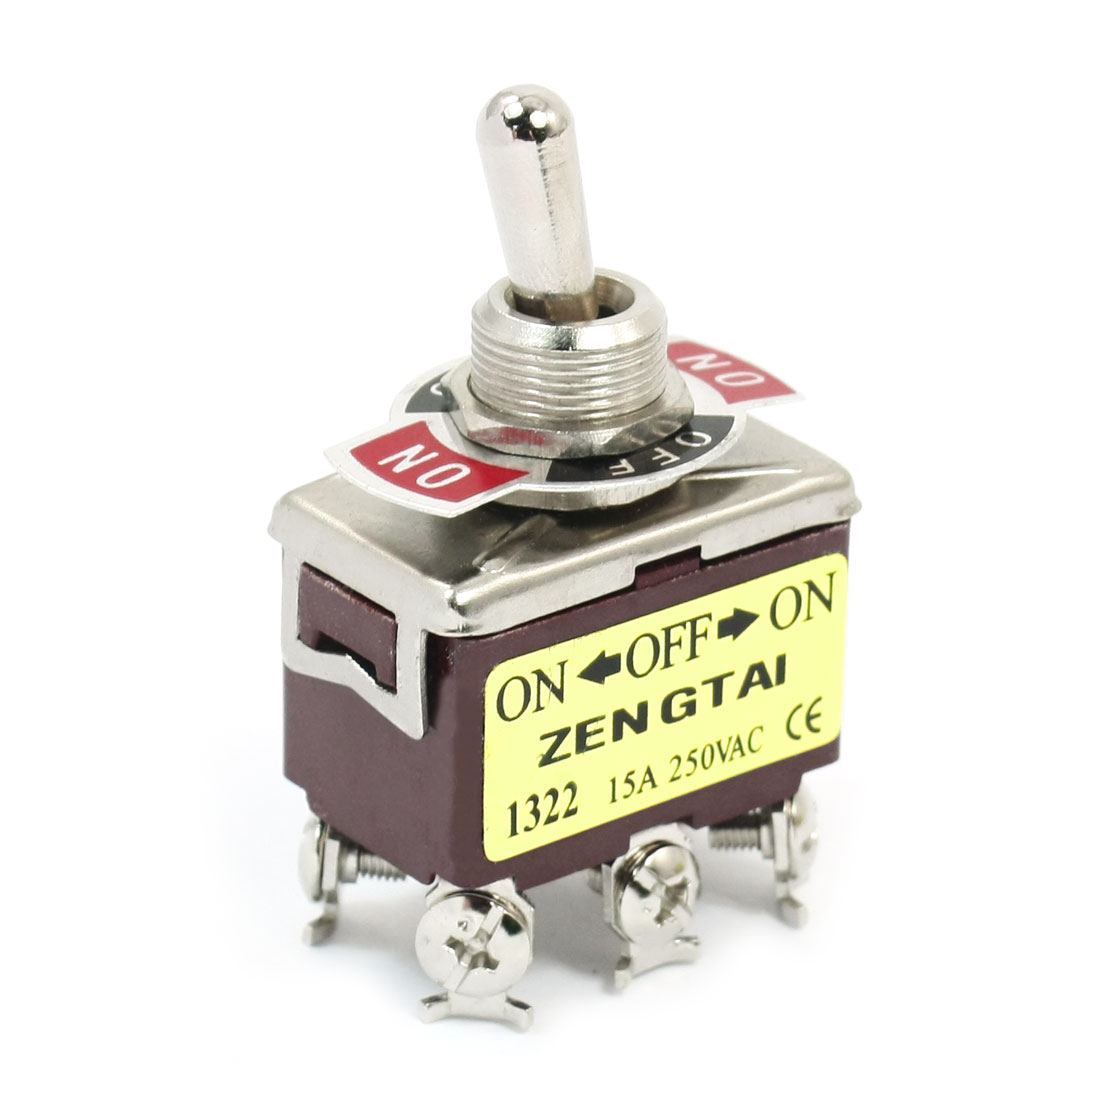 11mm Panel Mount DPDT ON/OFF/ON 3 Position Toggle Switch AC 250V 15A E-TEN1322